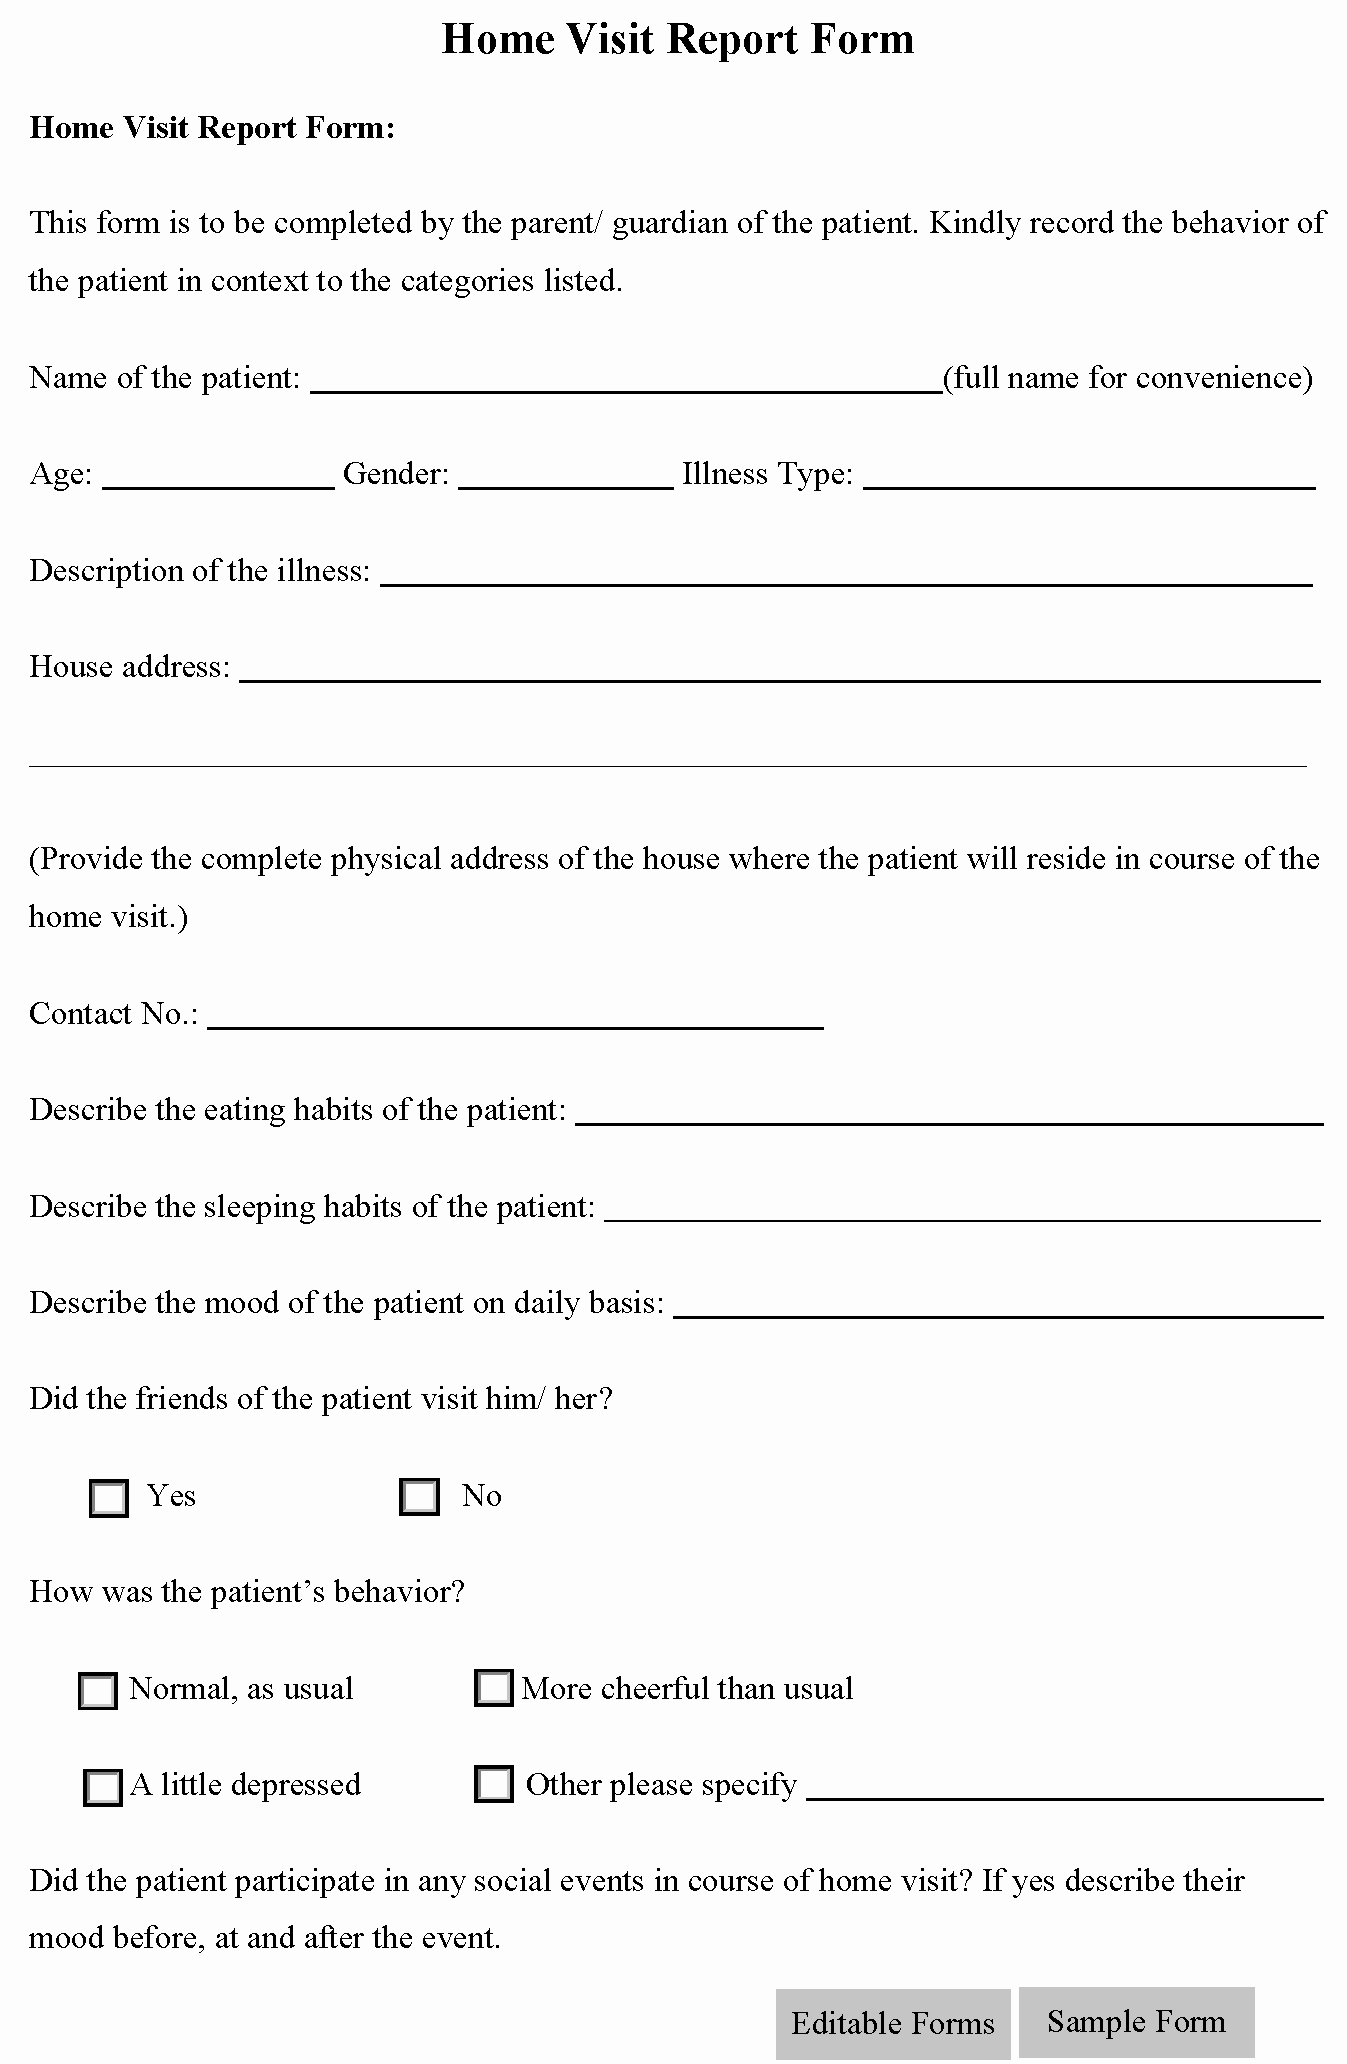 Supervised Visitation Report Template Beautiful Home Visit Report form